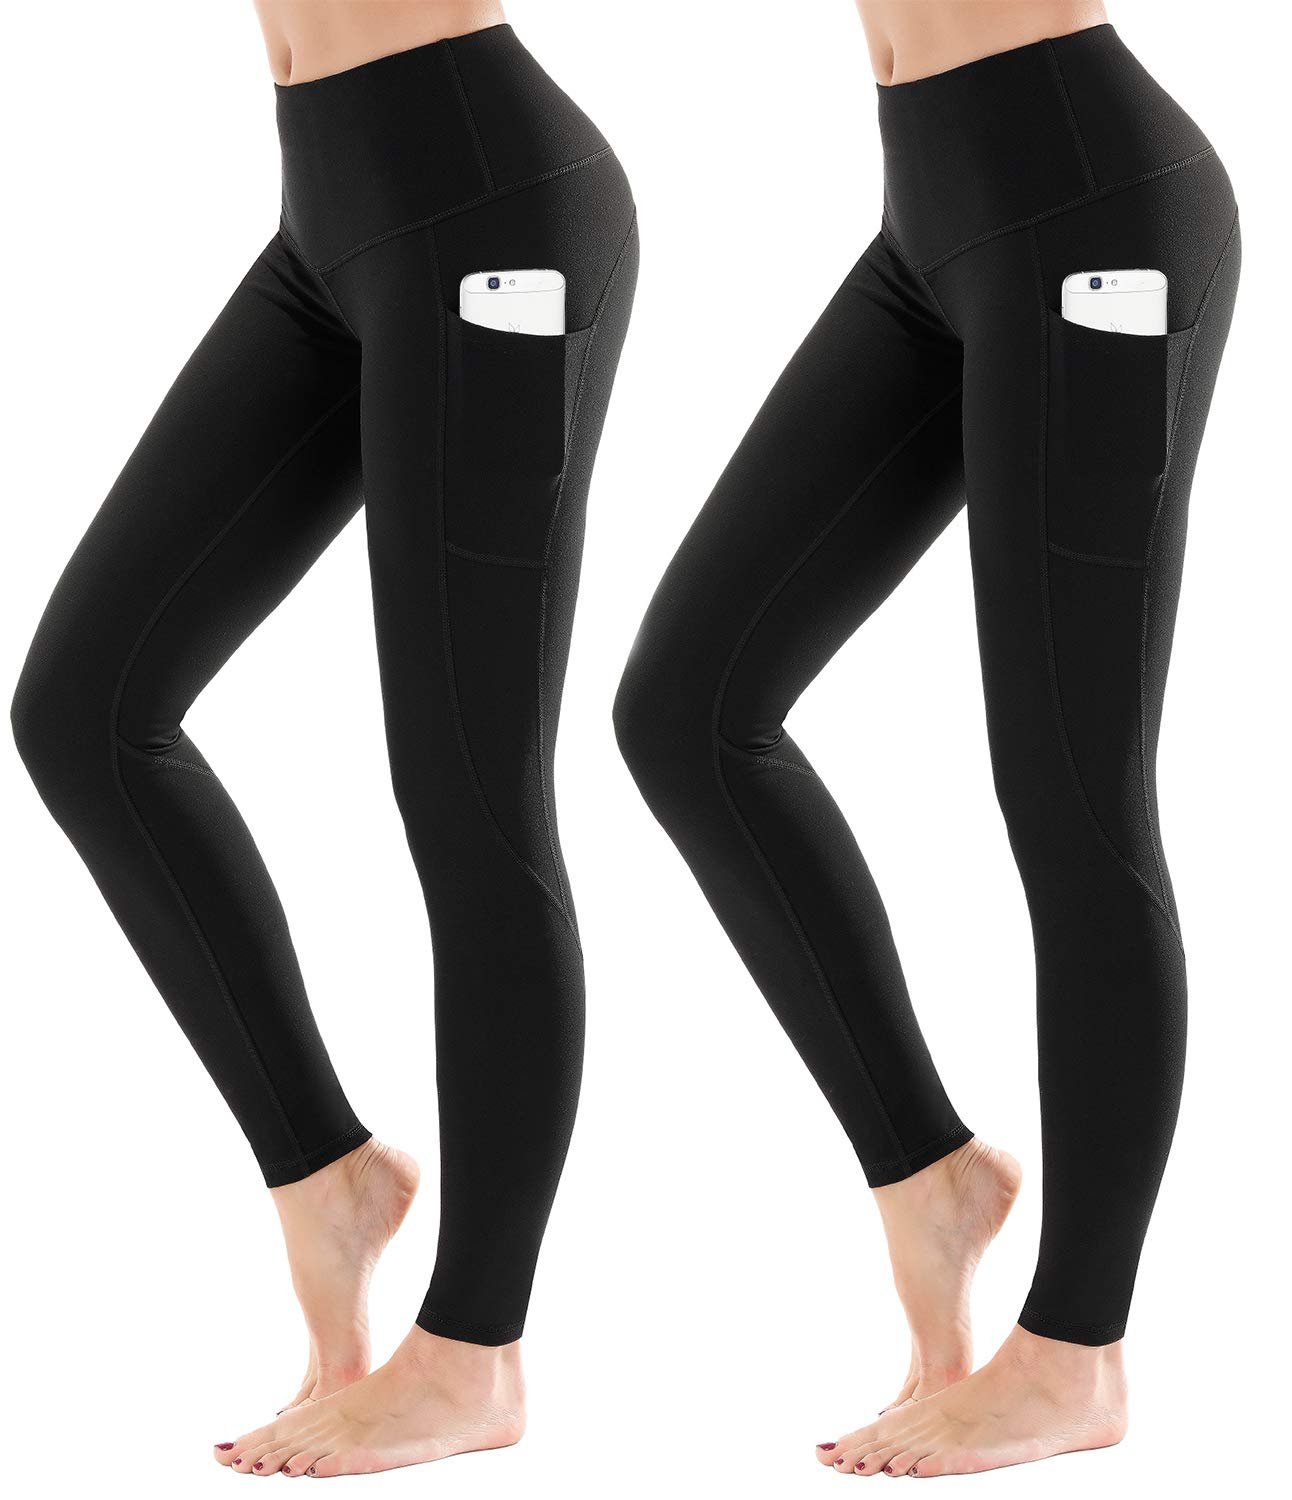 LifeSky Women Yoga 2 Packs Pants Workout Leggings with Pockets Tummy Control Soft Leggings